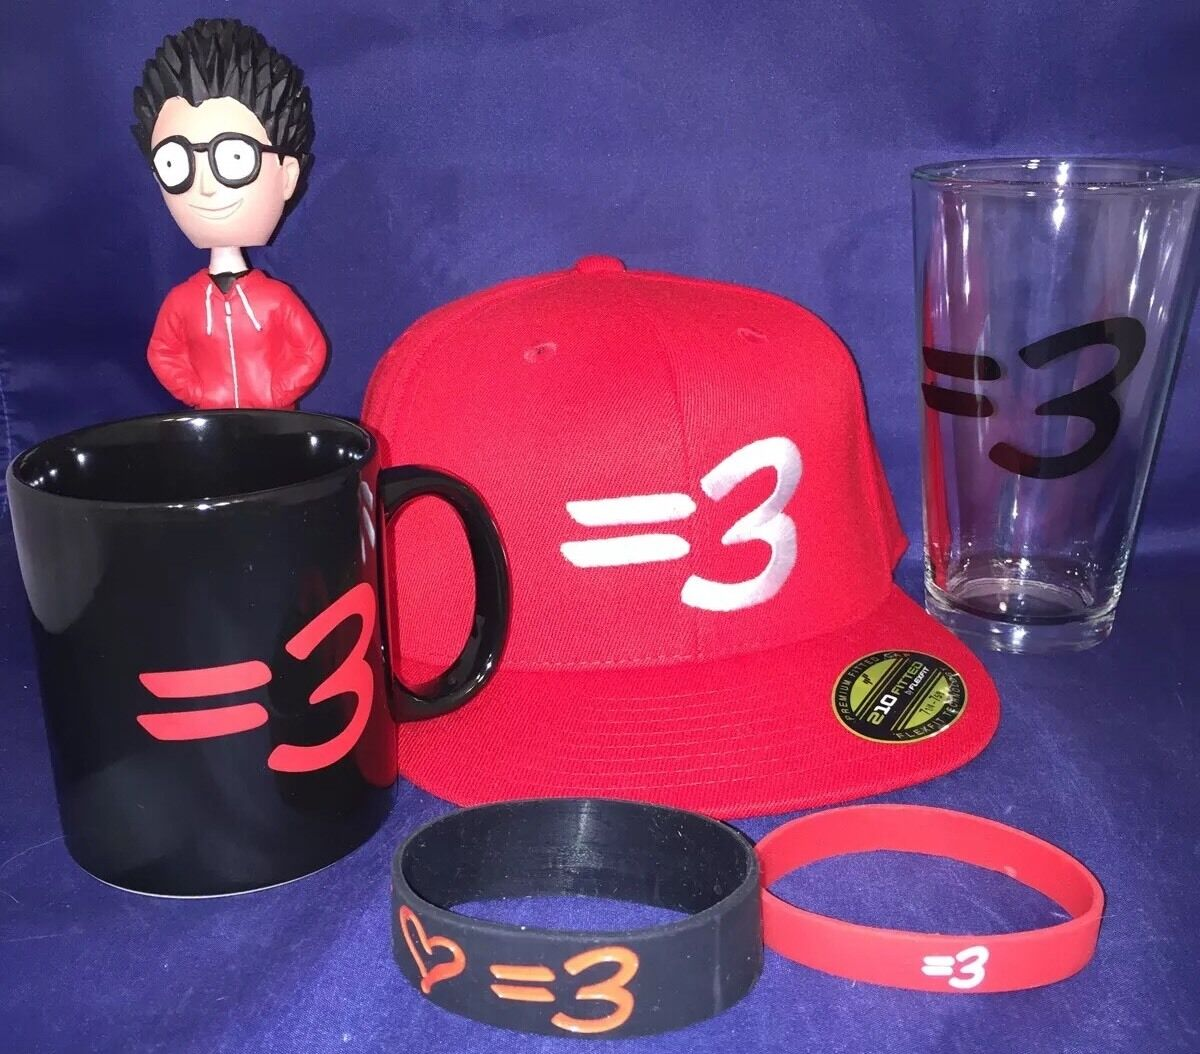 Ray Show William Johnson =3 YouTube Show Ray Hat Mug Glass Bobble Head & Bracelet New Lot 69ae40